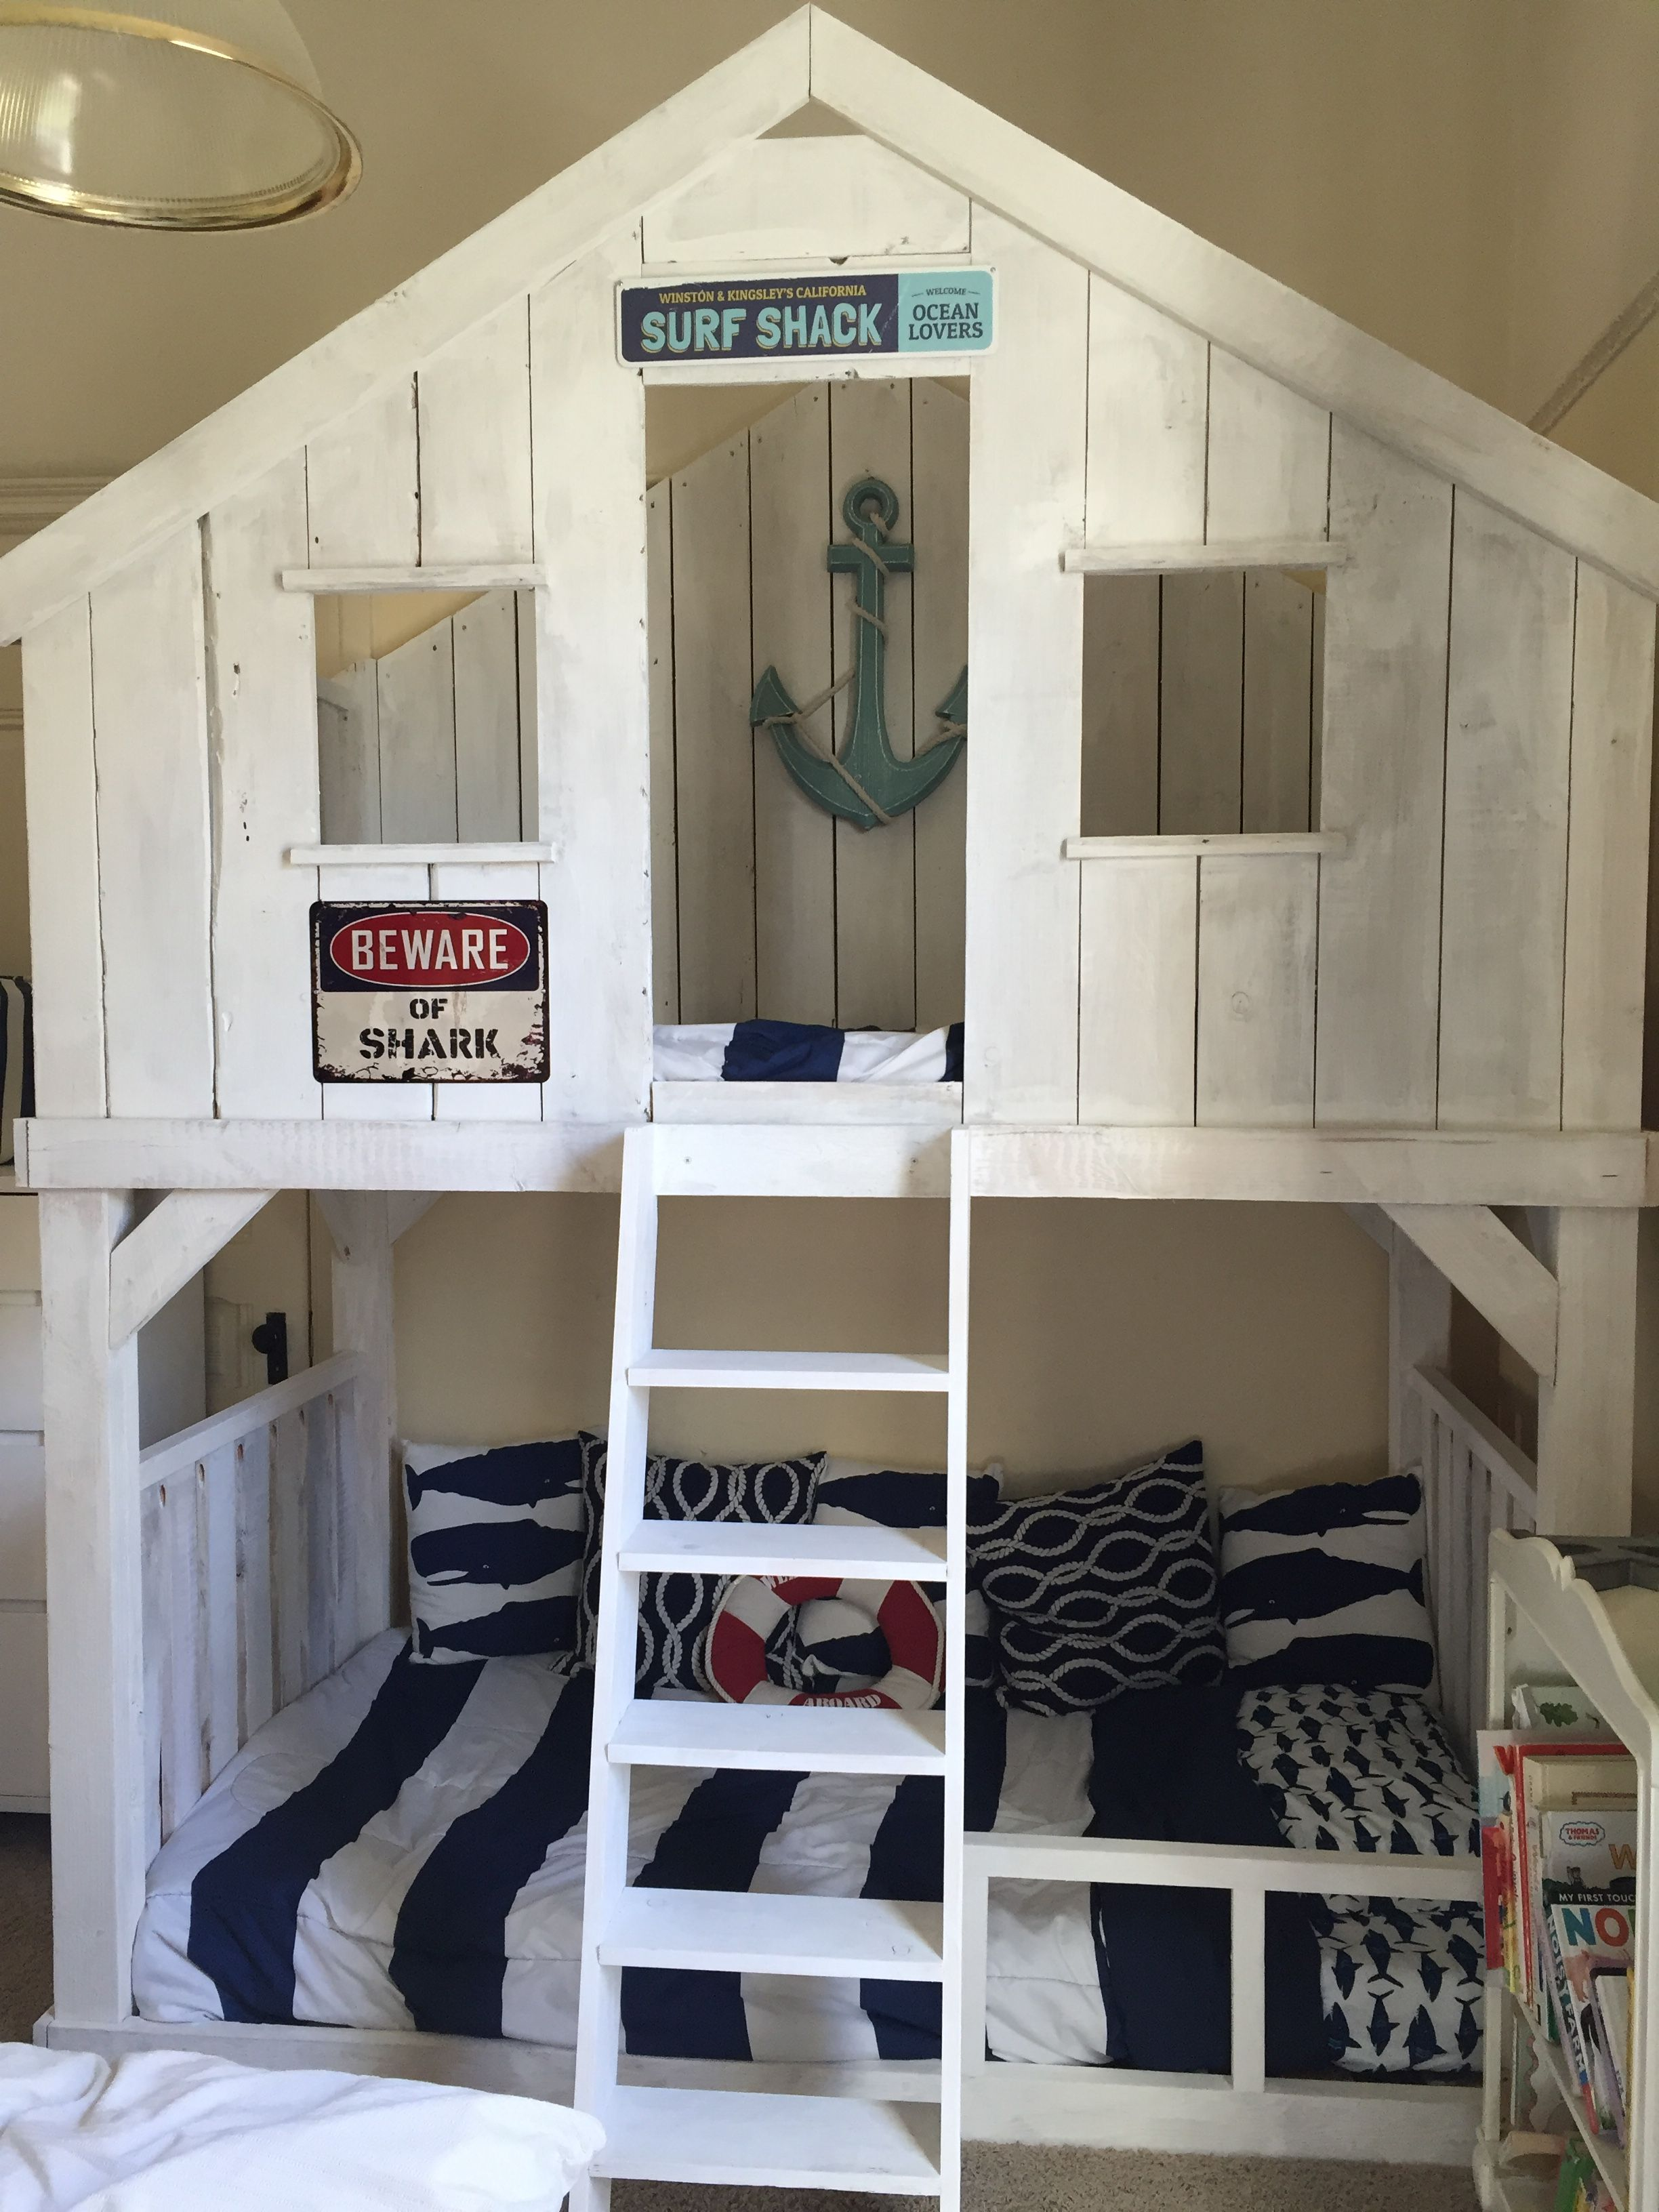 Surf shack bunk bed using club house bed plans do it yourself surf shack bunk bed using club house bed plans diy projects solutioingenieria Image collections